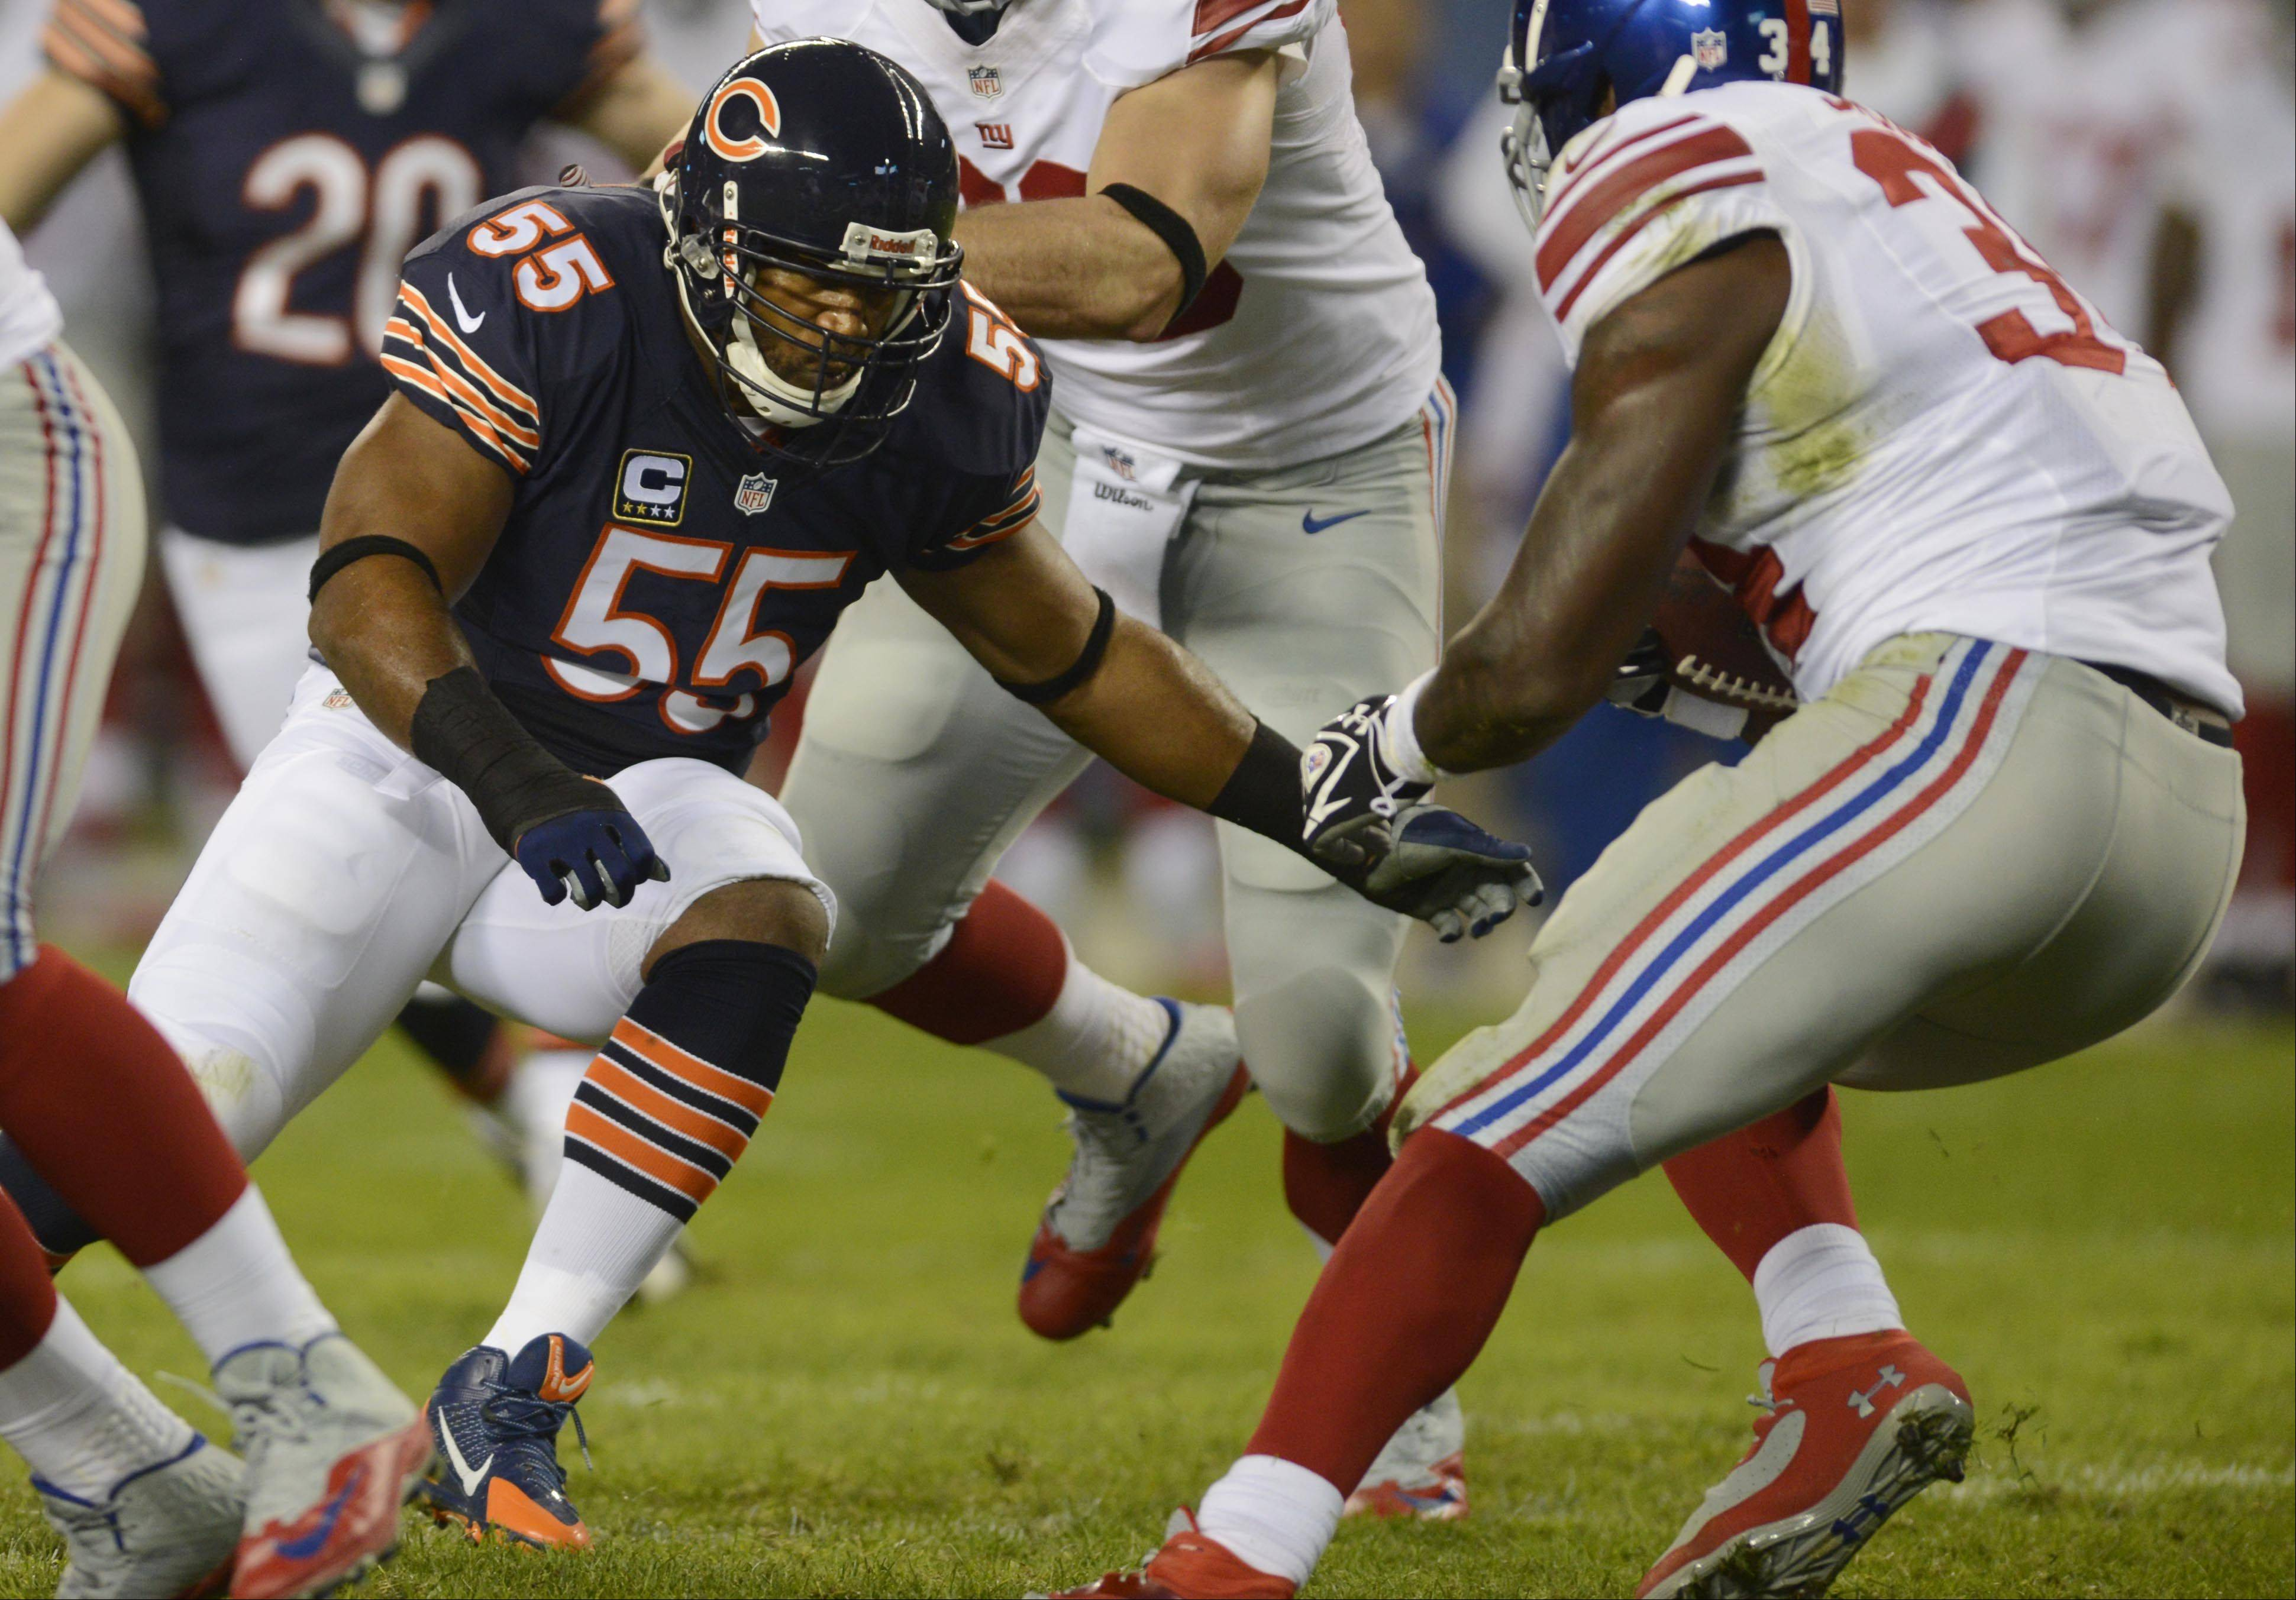 Lance Briggs lines up New York Giants running back Brandon Jacobs earlier this season.